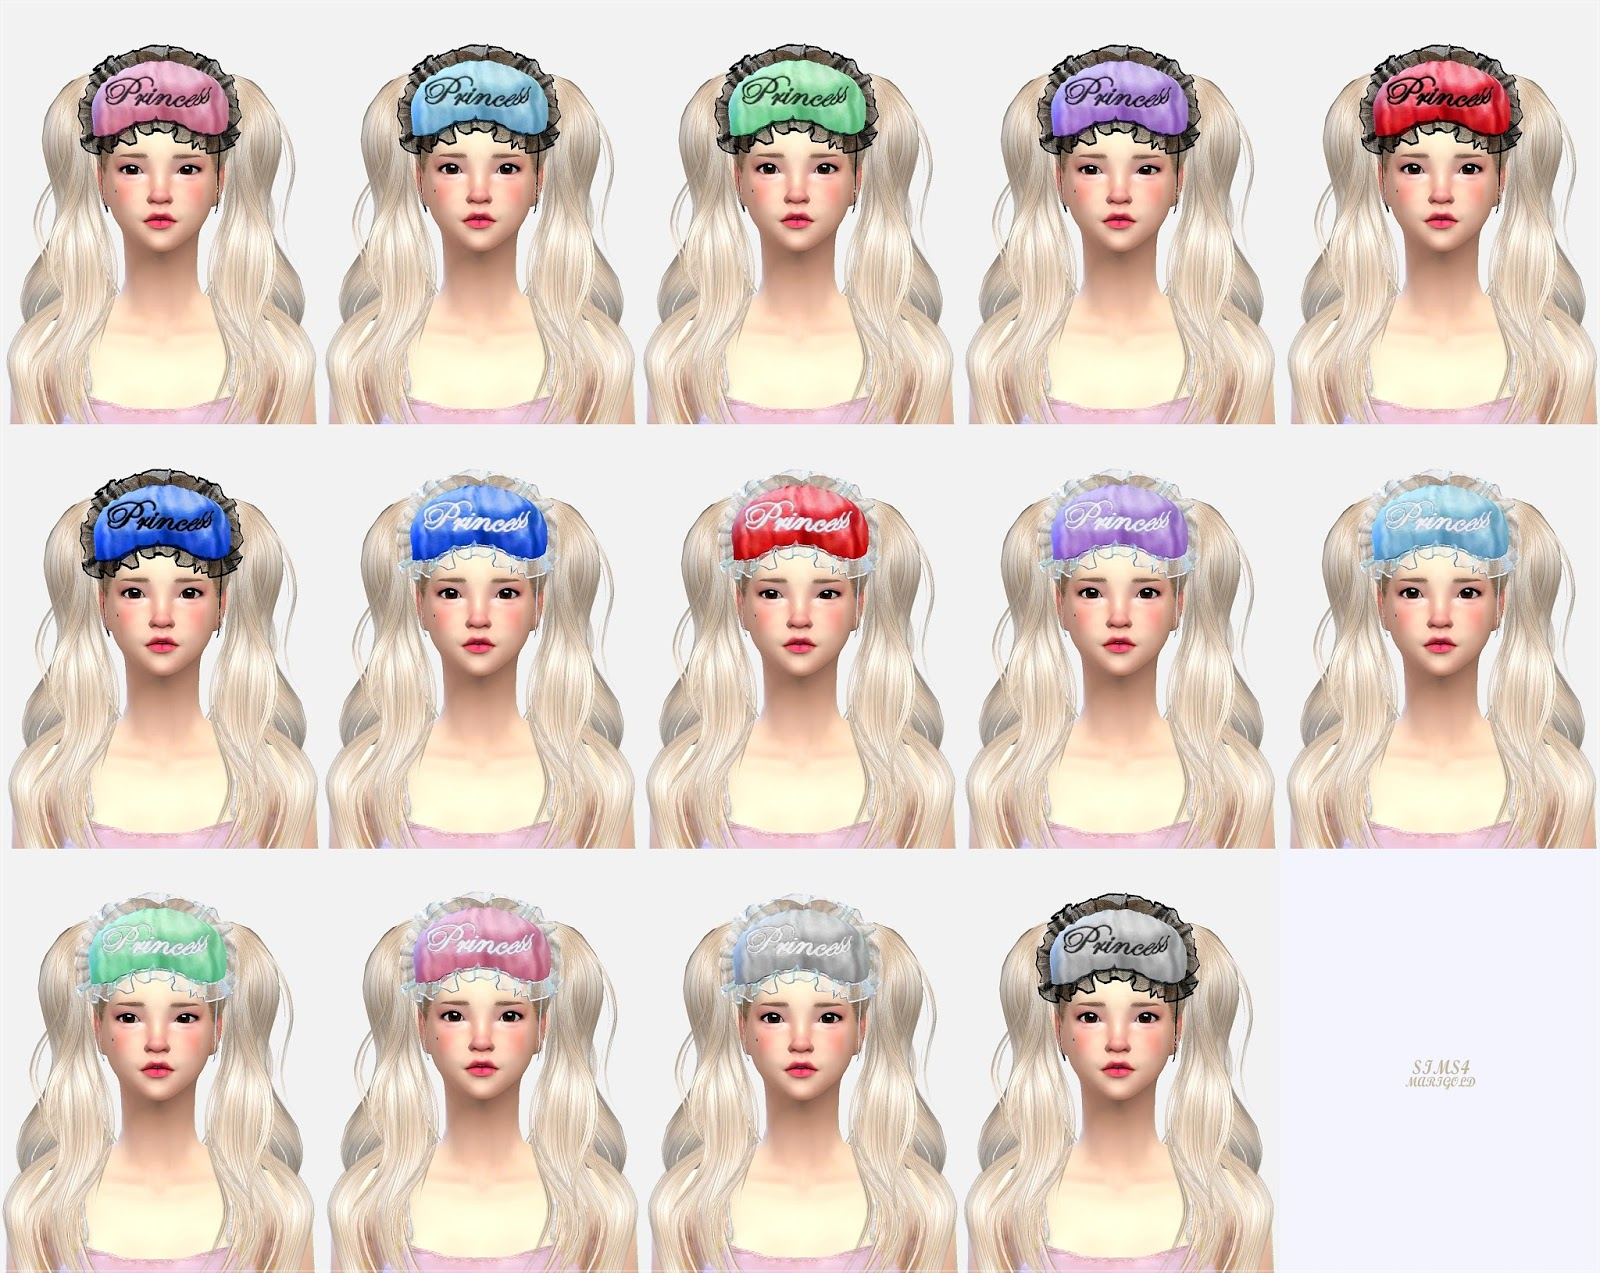 The sims 4 hair accessories - Sleeping Masks And Hair Accessories By Sims 4 Marigold